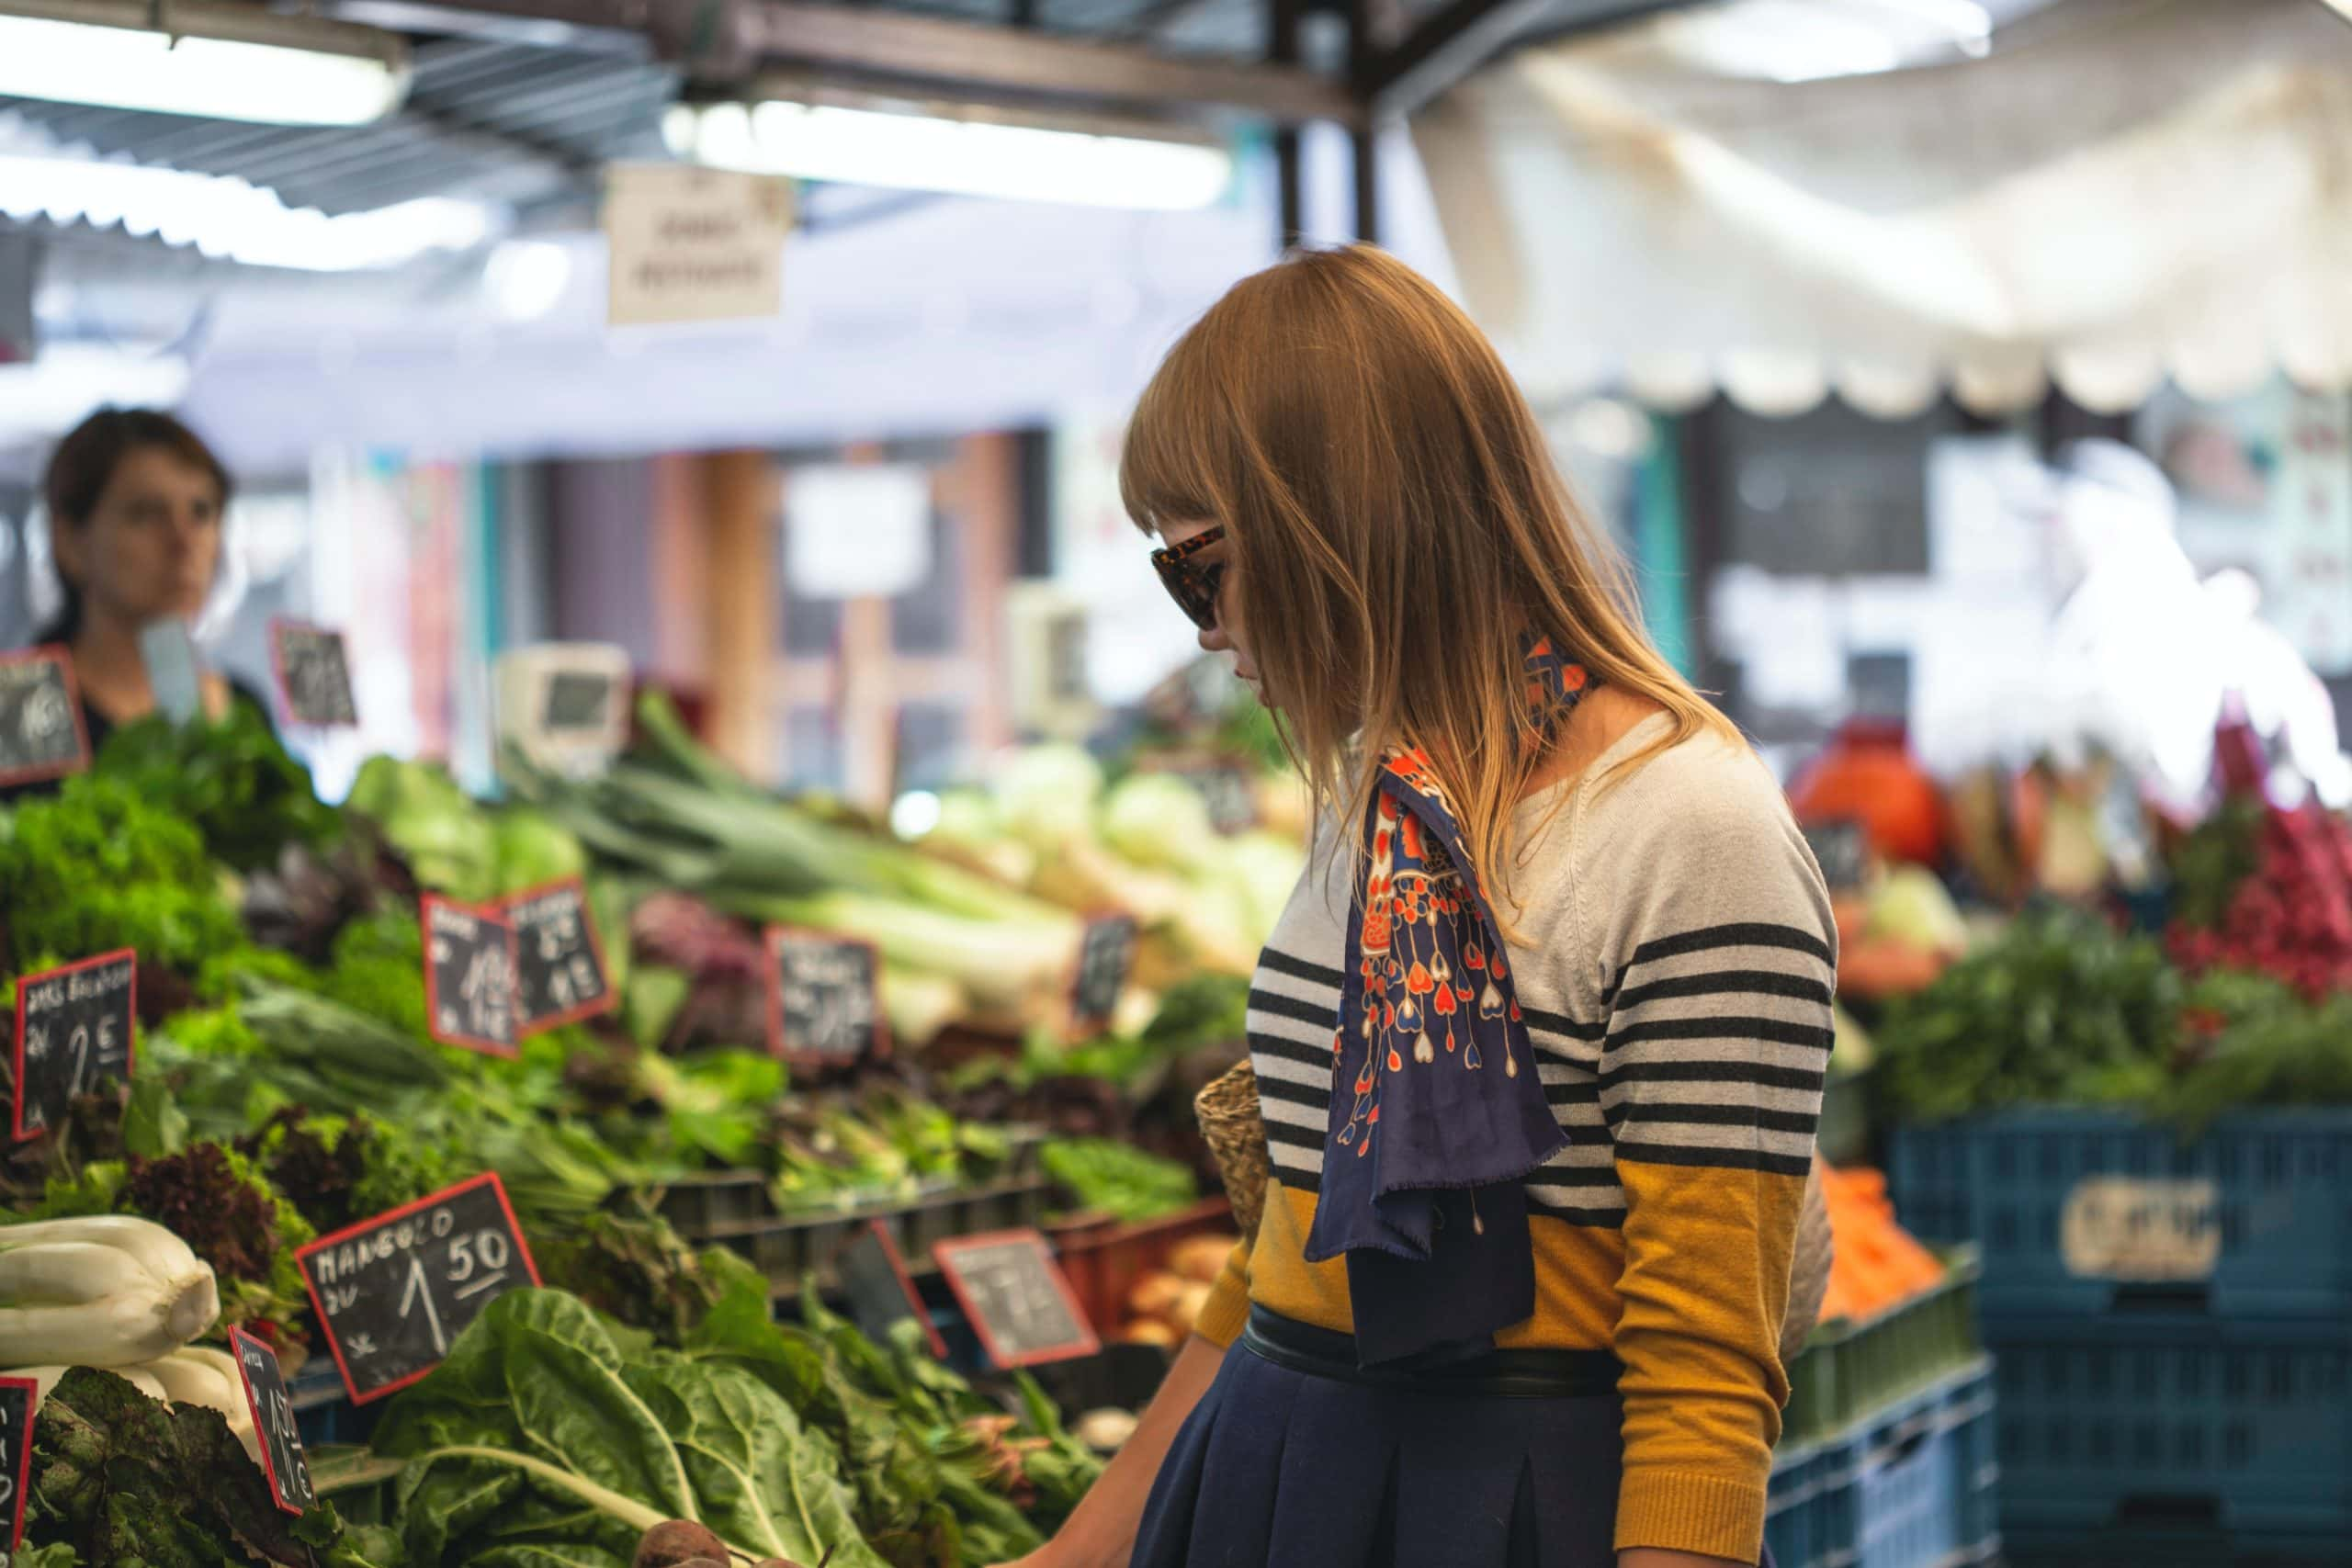 woman standing in front of vegetables in market during day time